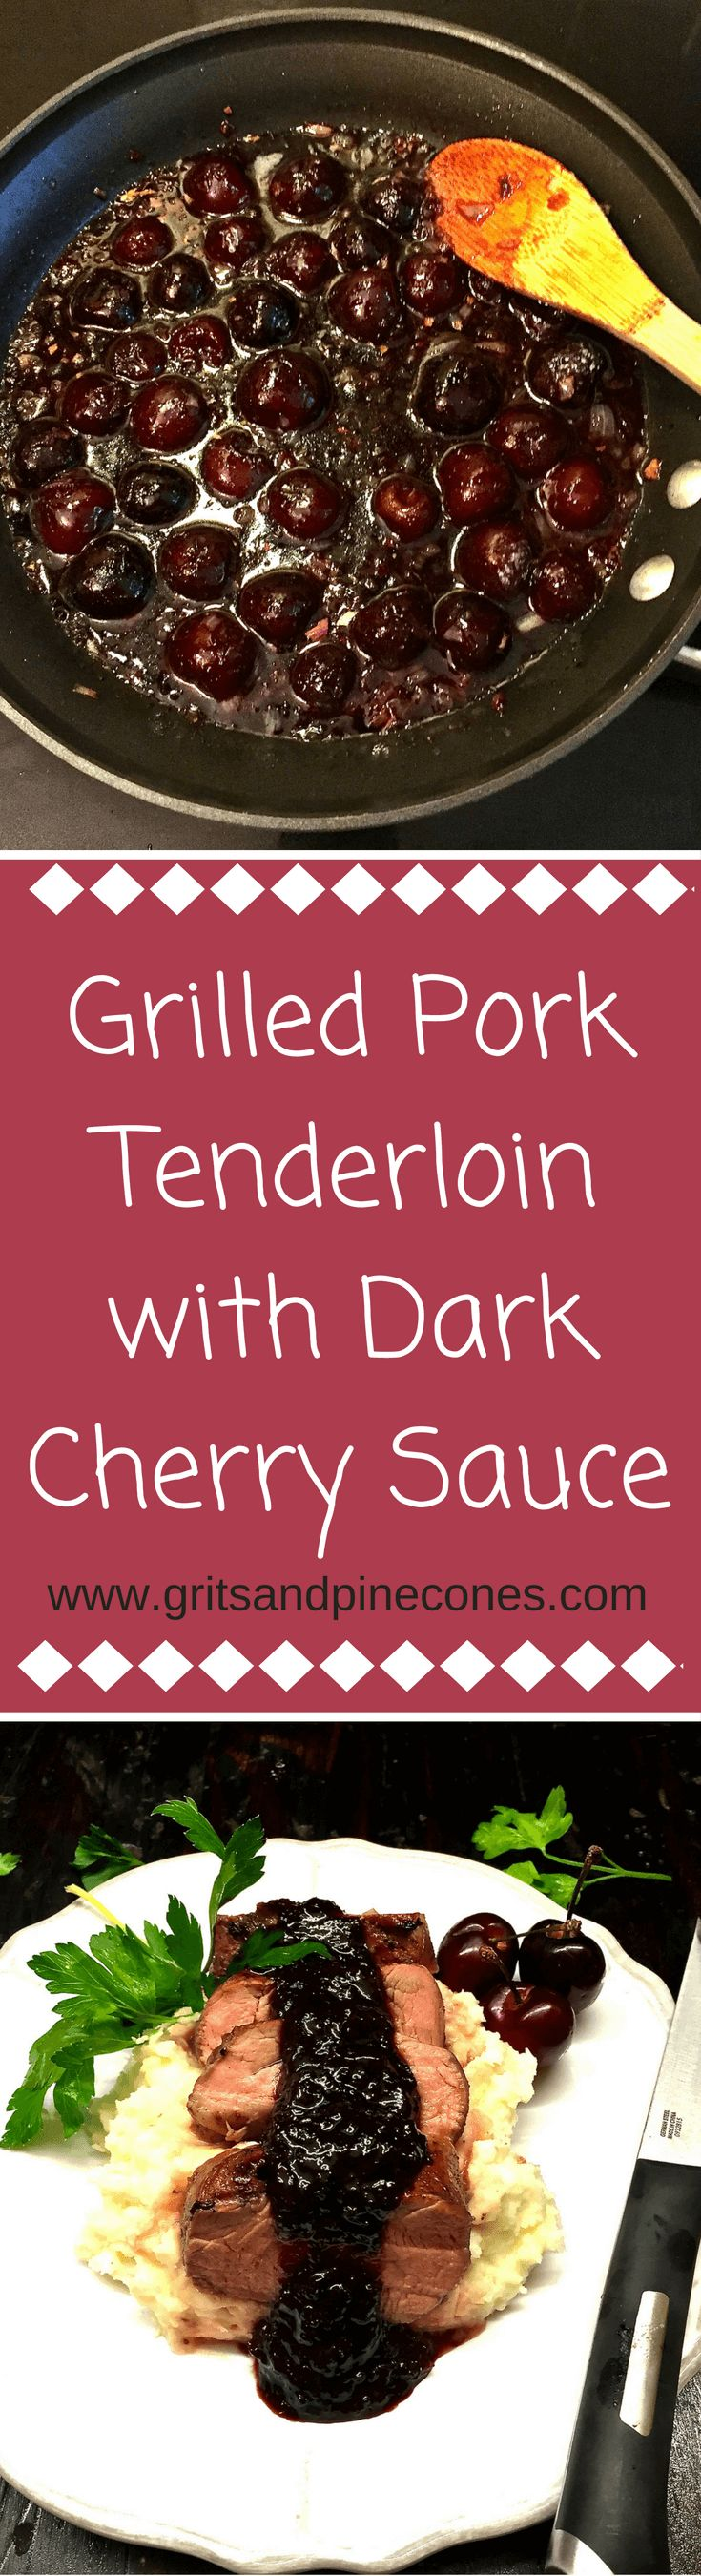 Imagine if you will, tender, juicy and delectable grilled pork tenderloin…